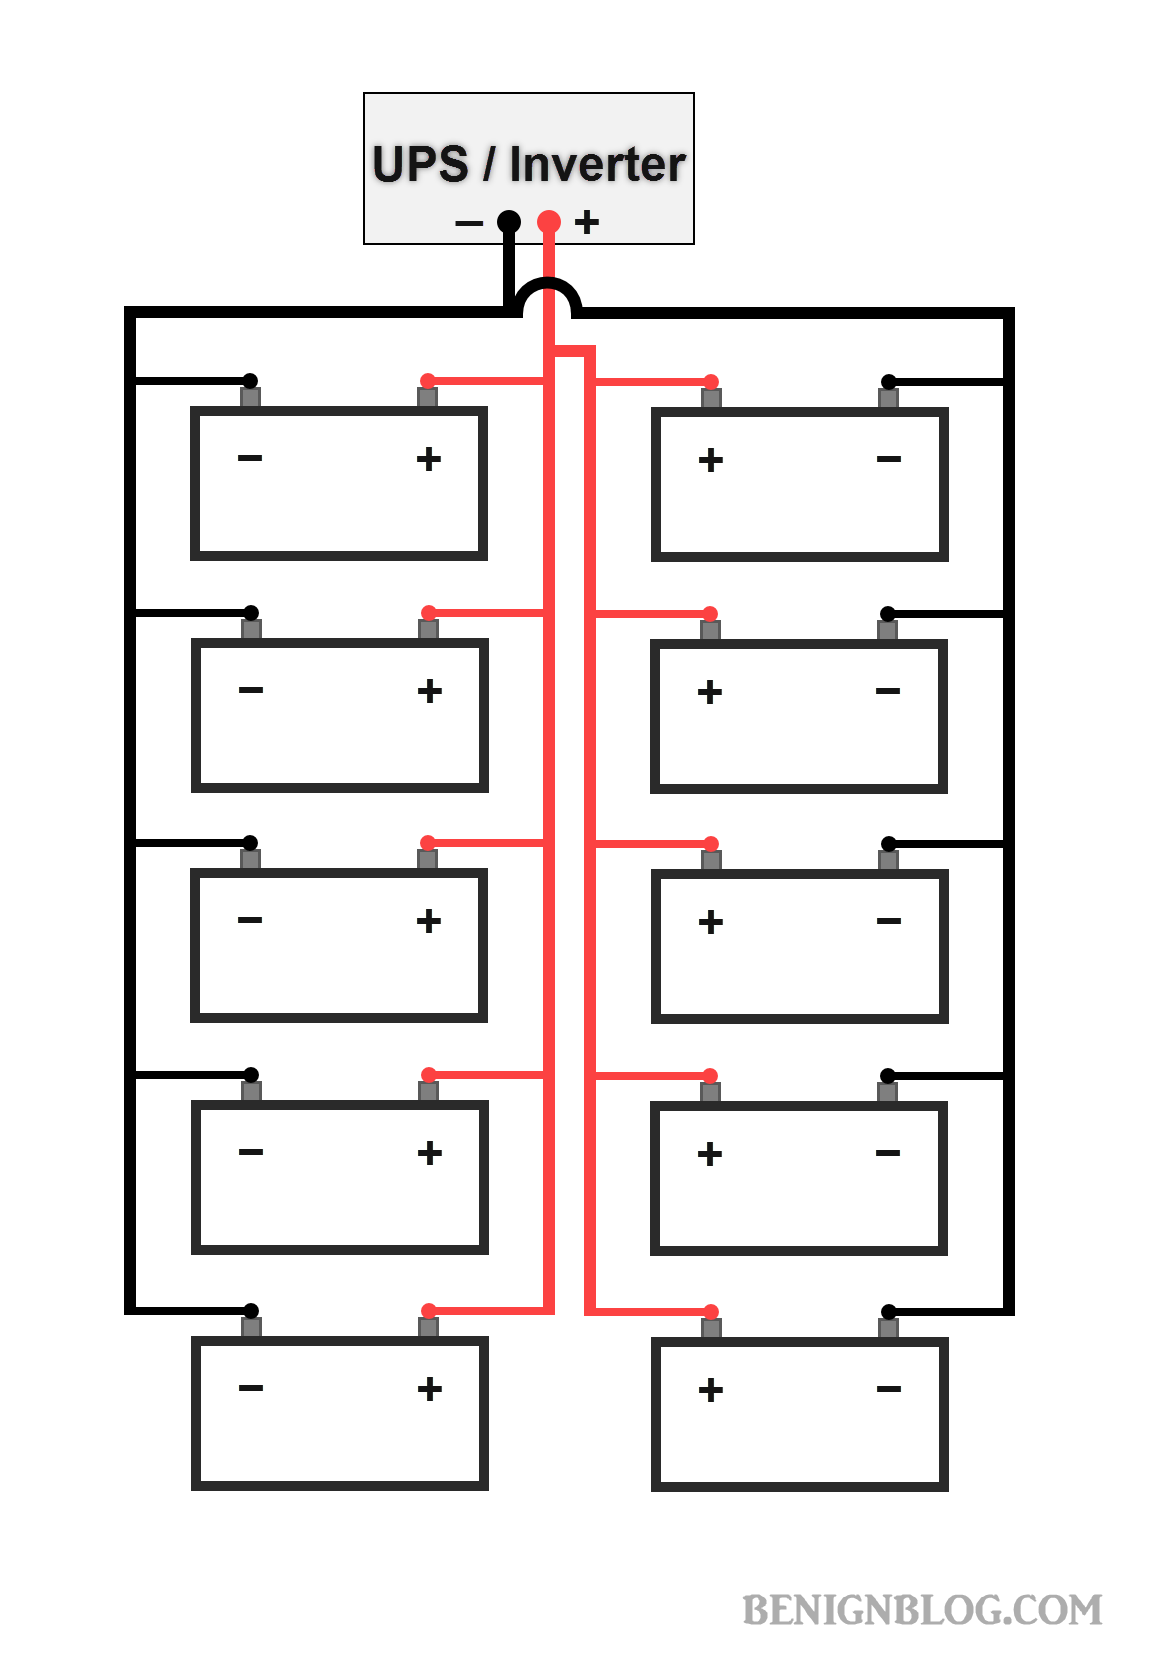 how to connect batteries in parallel with power inverter or ups rh benignblog com battery parallel connection diagram battery connection diagram for parallel